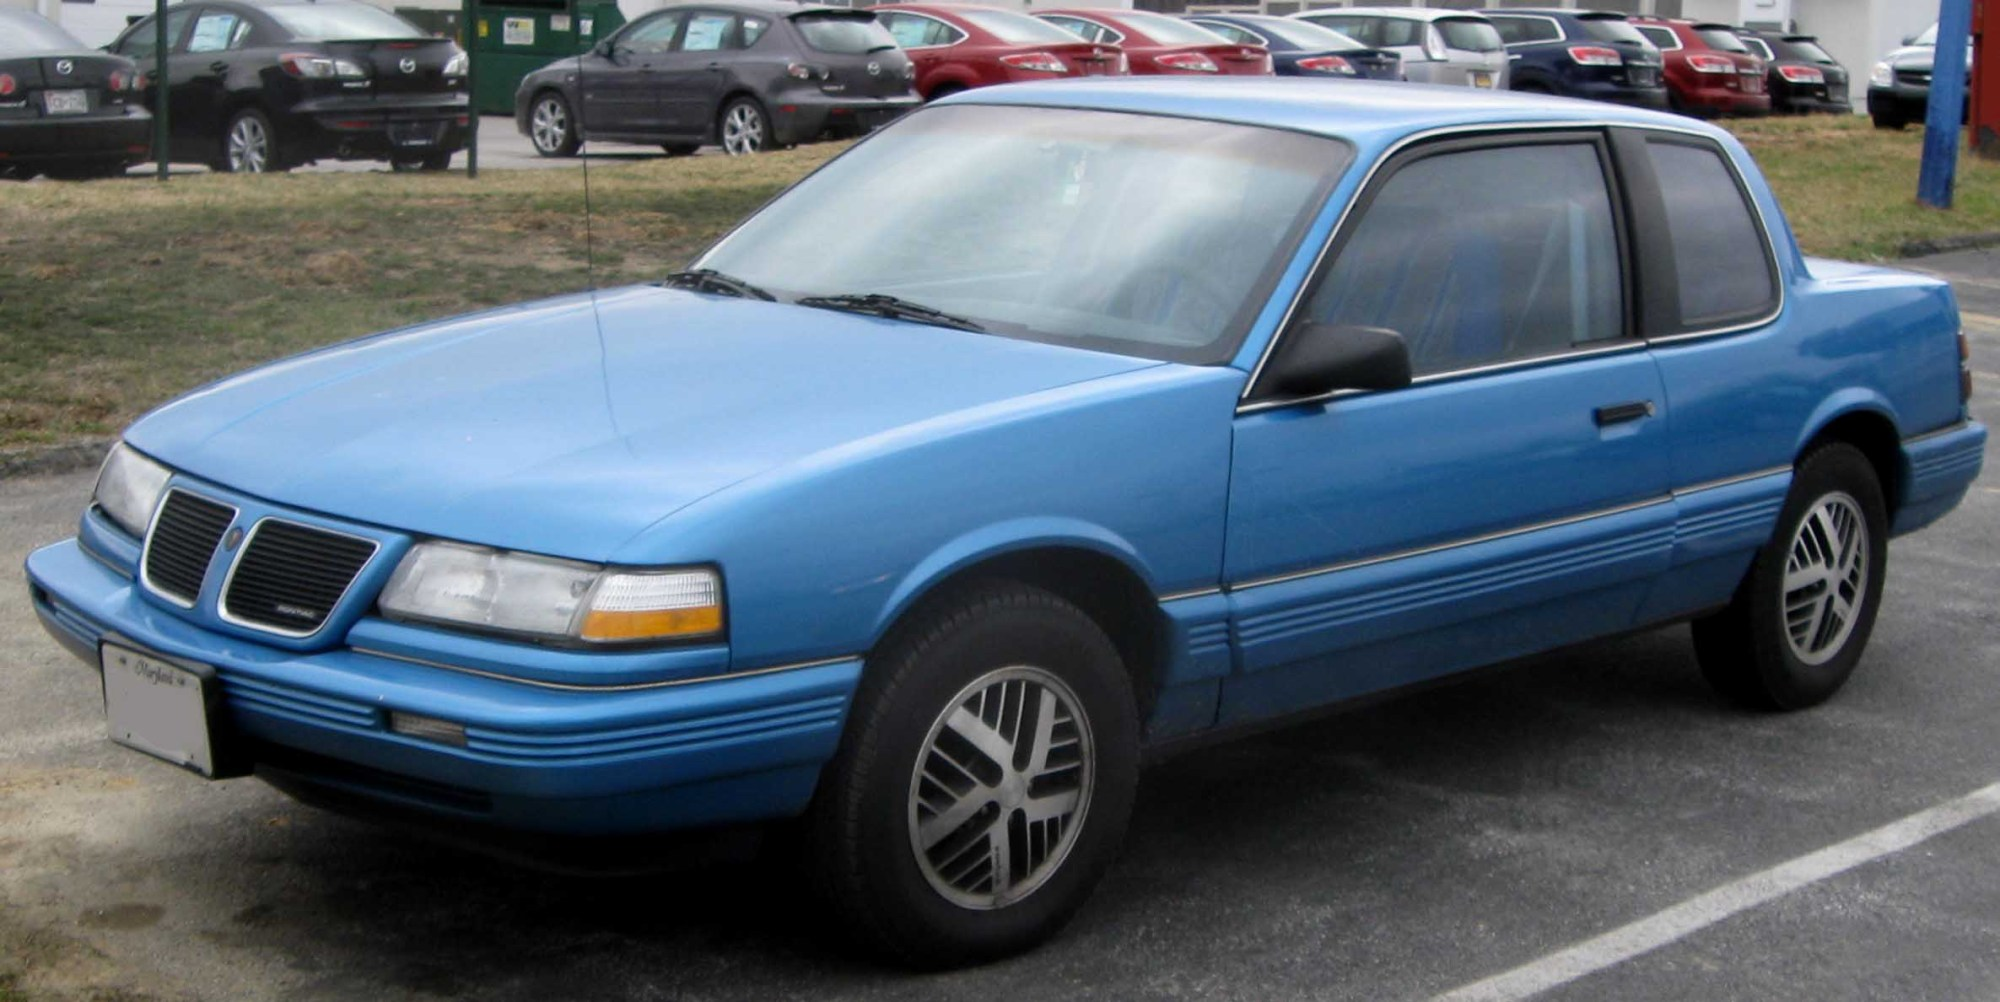 hight resolution of file 89 91 pontiac grand am le coupe jpg